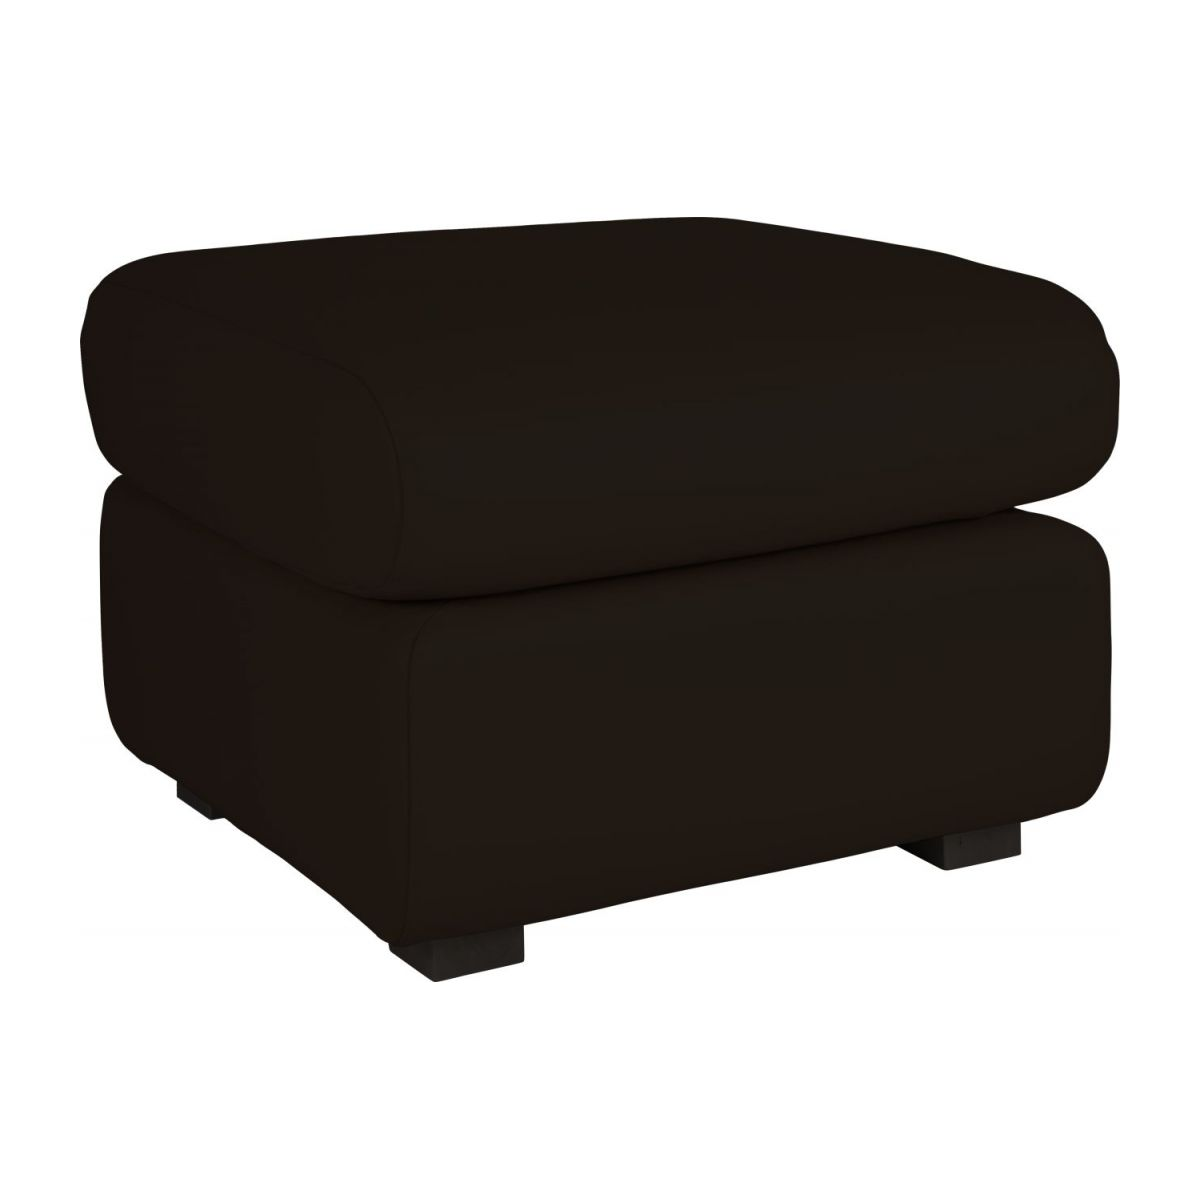 Leather footstool n°1